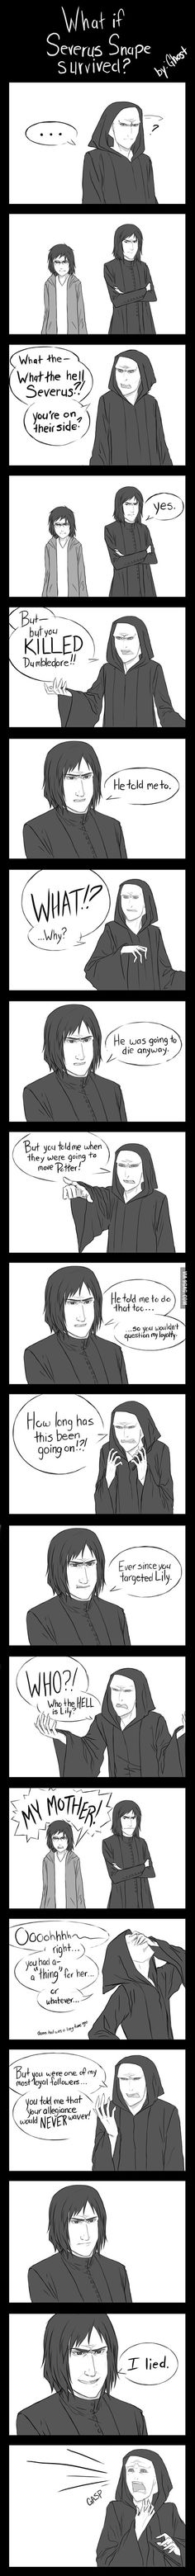 What if Severus Snape survived?